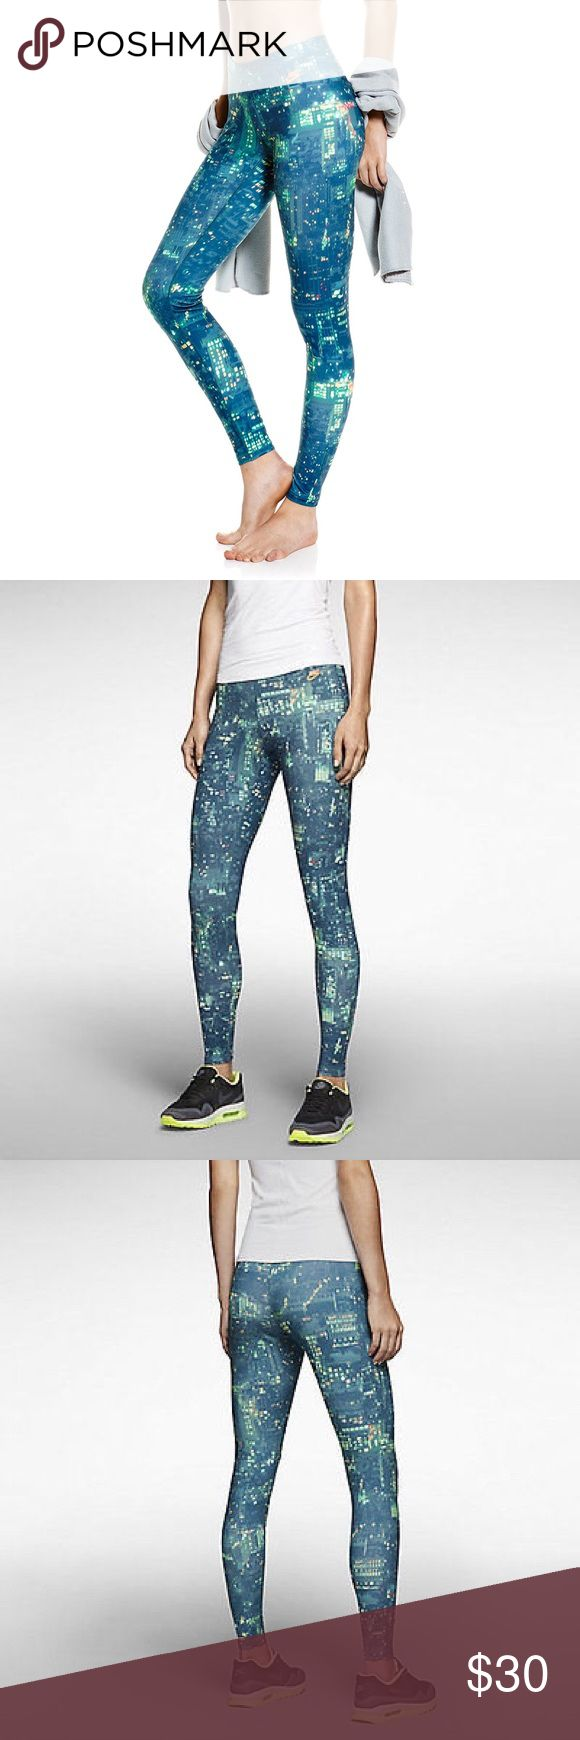 Nike Ru City Print Leggings Only worn once. No flaws. STRETCH COMFORT AND STAND-OUT STYLE. The Nike Printed Women's Leggings feature a bold allover print on stretchy French terry fabric for a head-turning look and body-hugging fit.  Benefits: Stretch waist for a snug, comfortable fit. Allover print for style.  Product Details: Nike corporate logo at left hip. Fabric: 94% polyester/6% spandex. Machine wash. Nike Pants Leggings